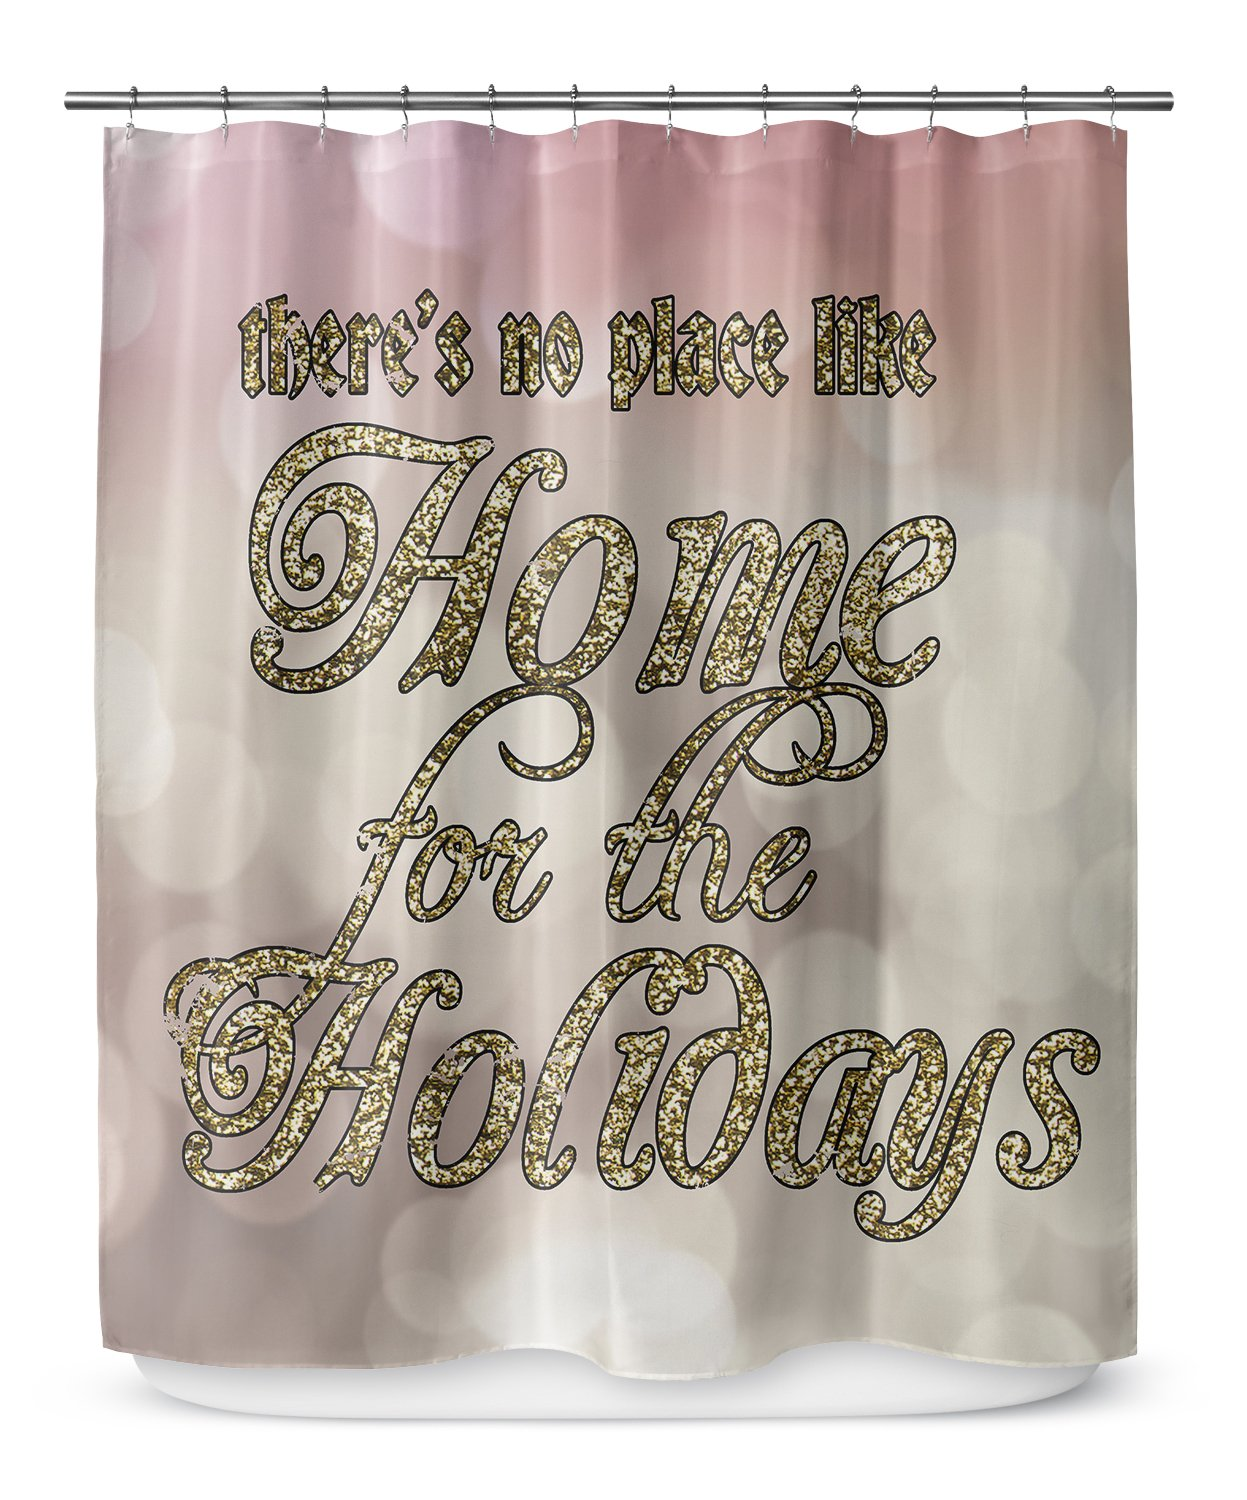 KAVKA Designs Home For The Holidays Shower Curtain, Gold//Pink//Tan - Size: 70x90 - PLUAVC2658LPLSC